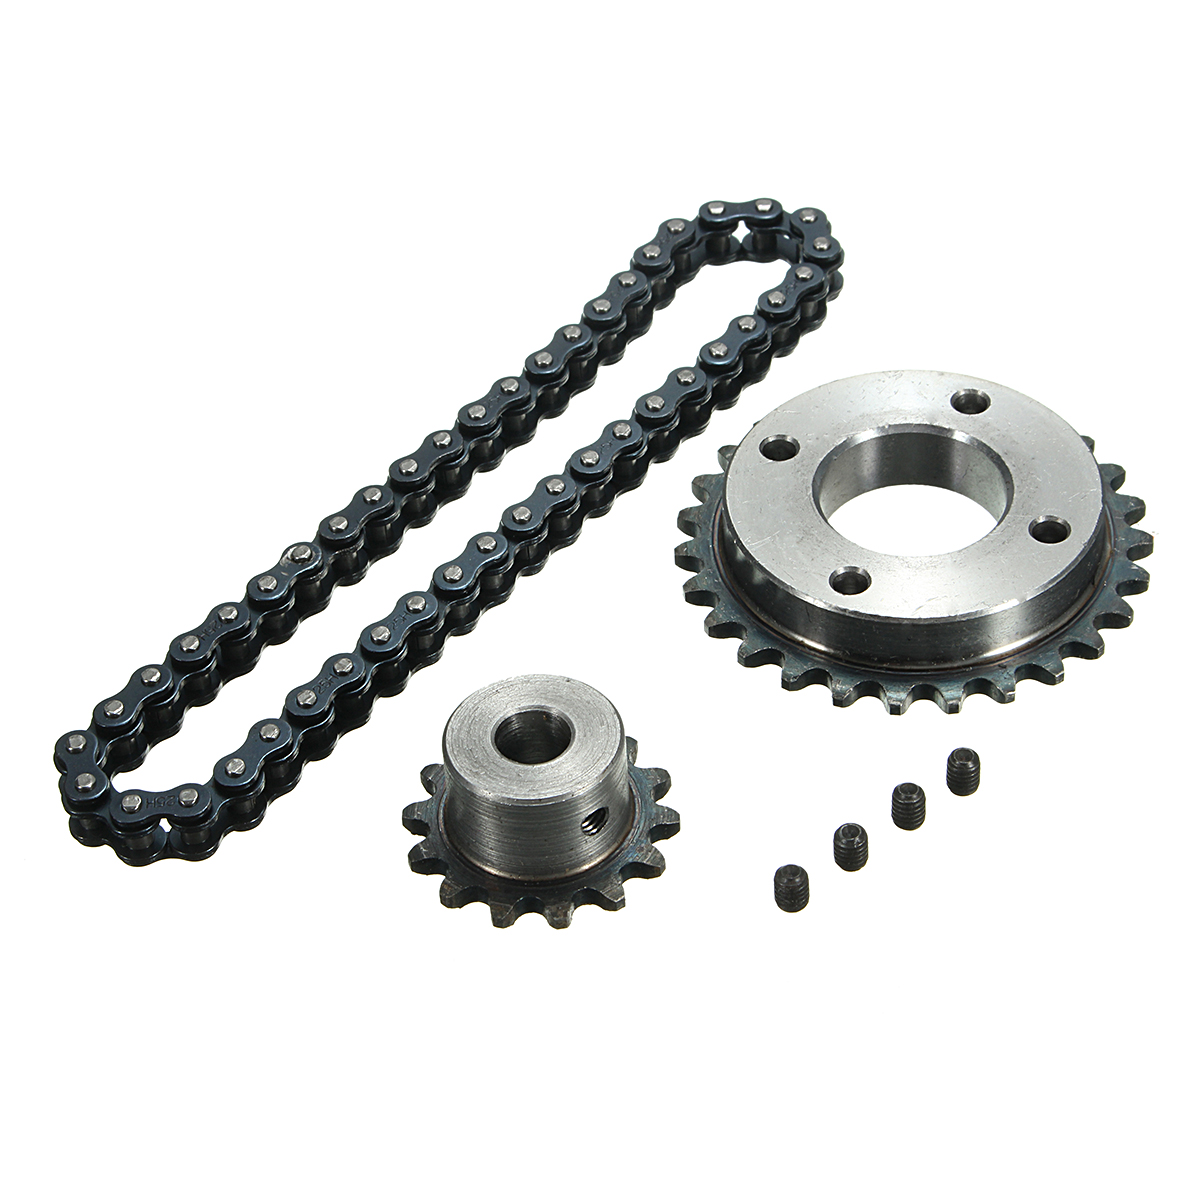 Sprocket Chain Wheel For 8044 Electric Longboard